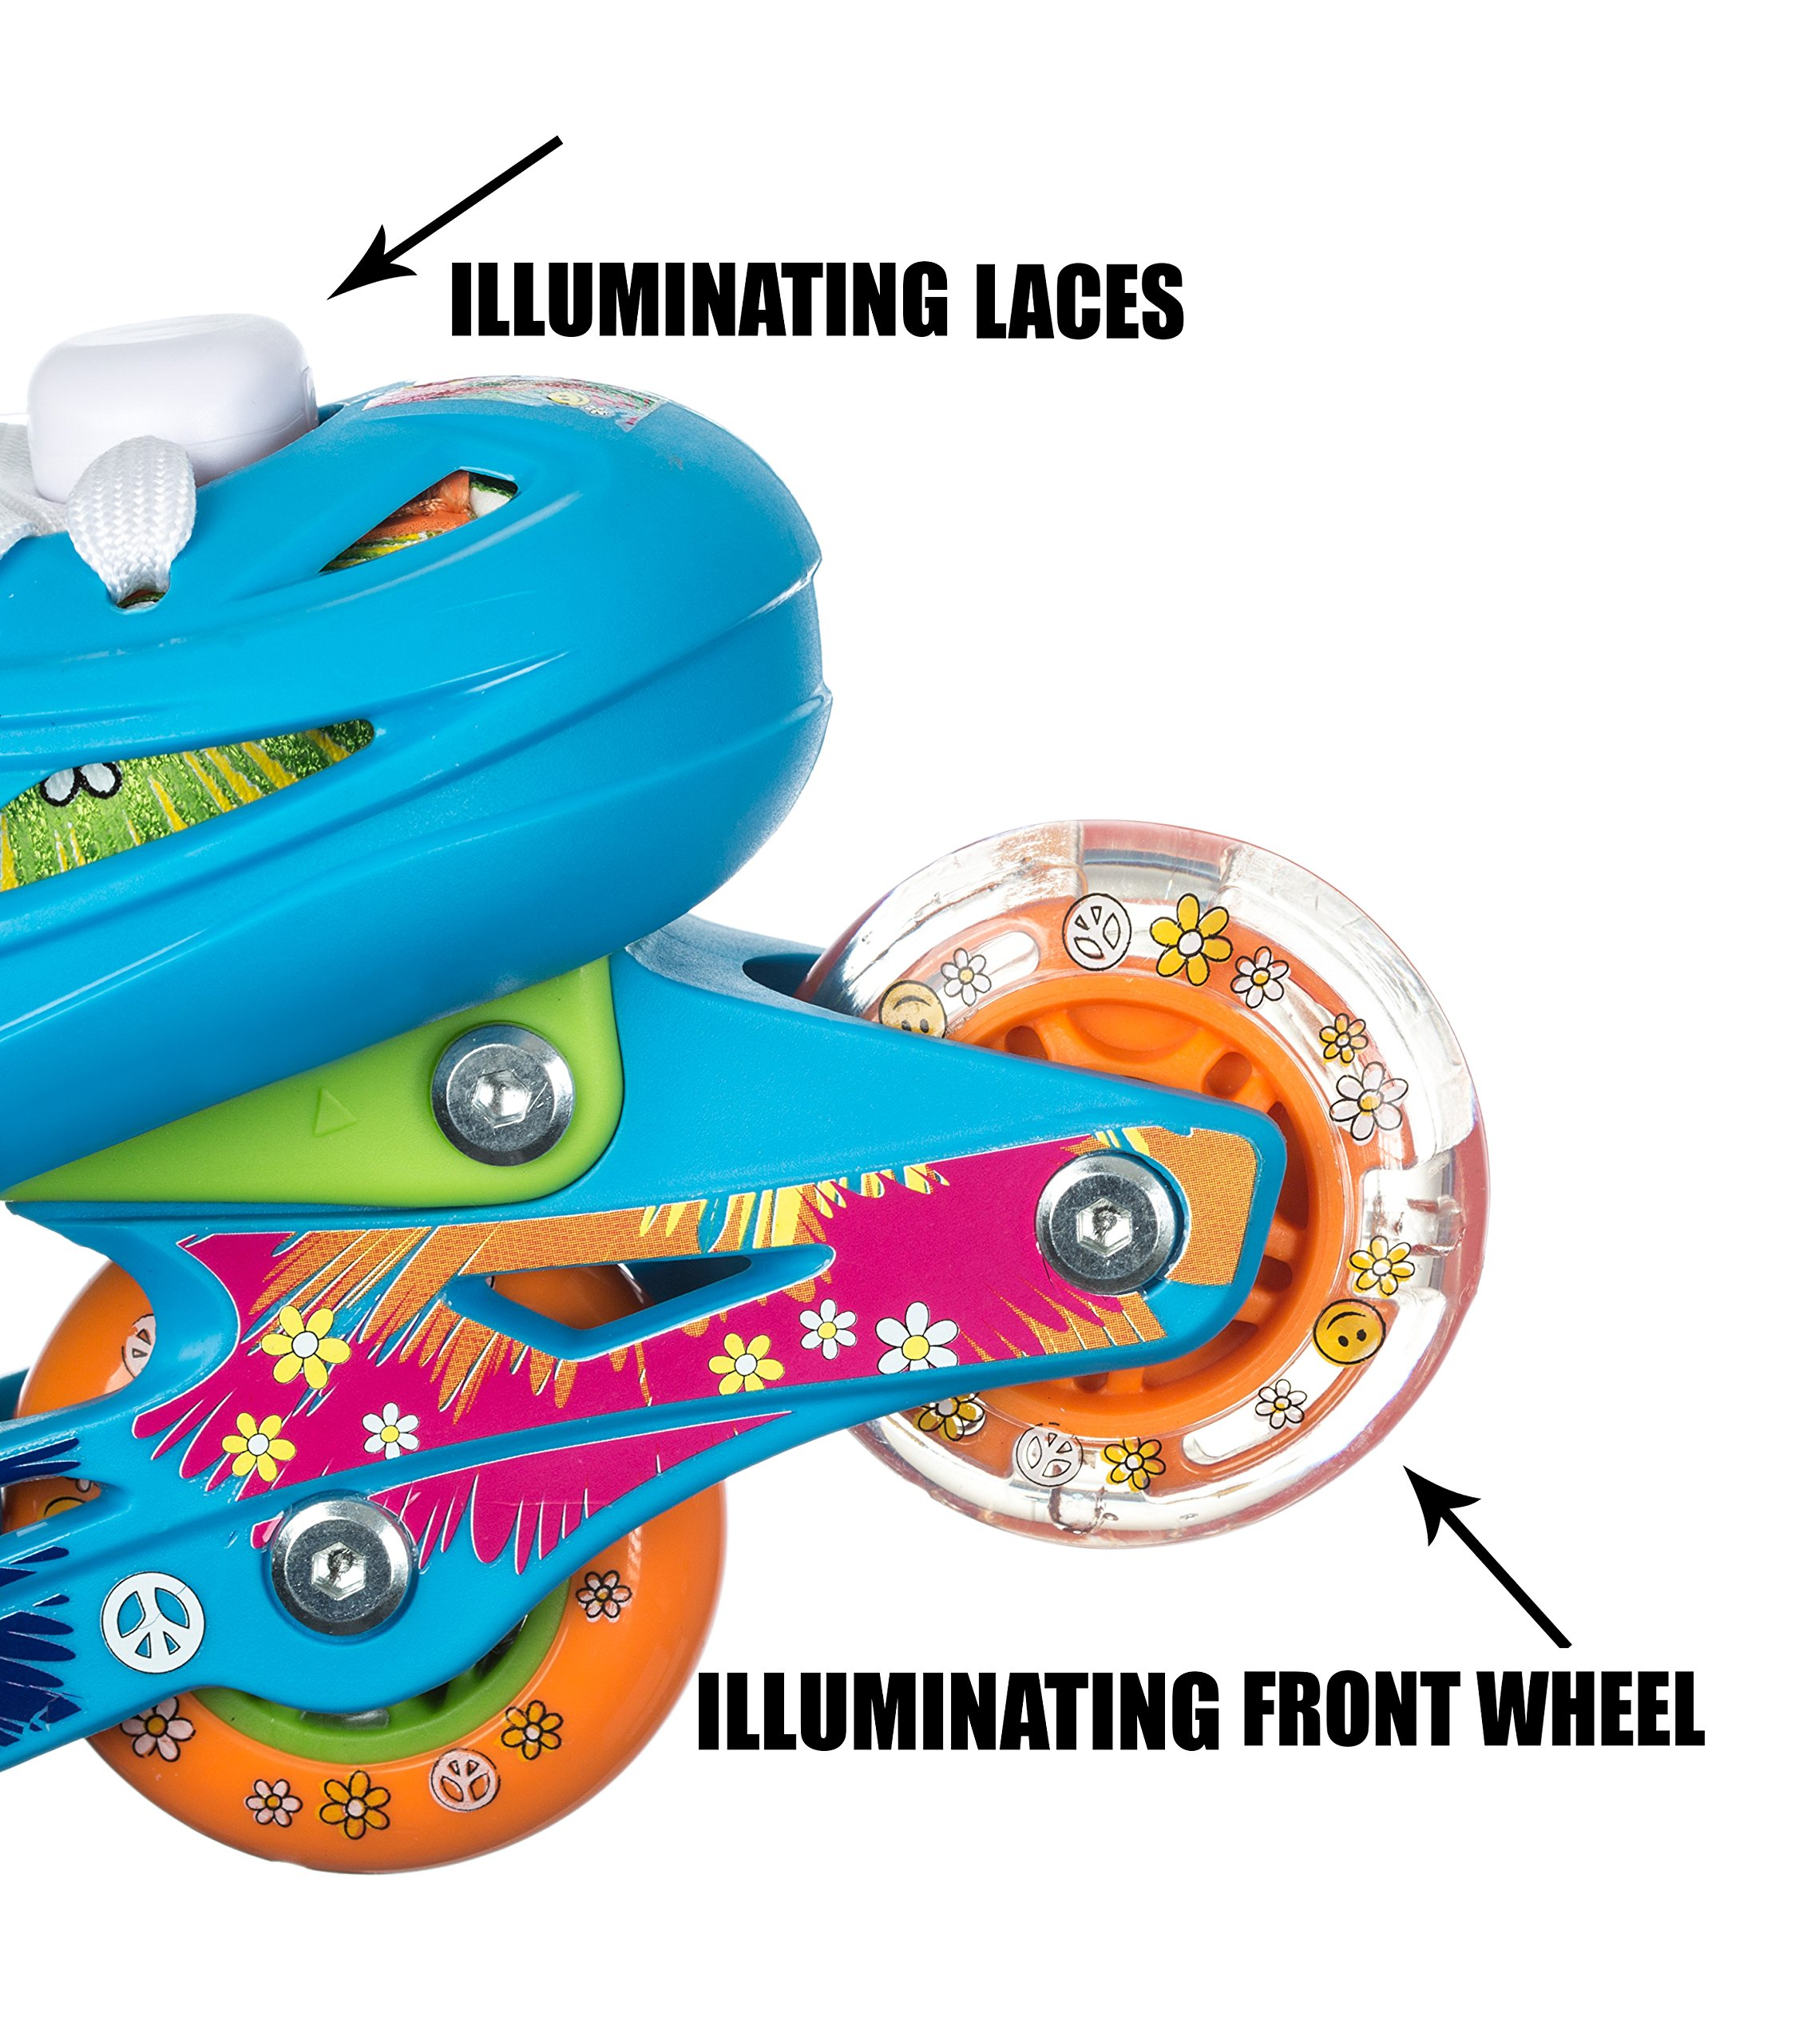 Titan Flower Power Princess Girls Inline Skates with LED Light-up Front Wheel and LED Laces, Multi-Color, Kid Size Small (Flower Power Princess Small Skates)